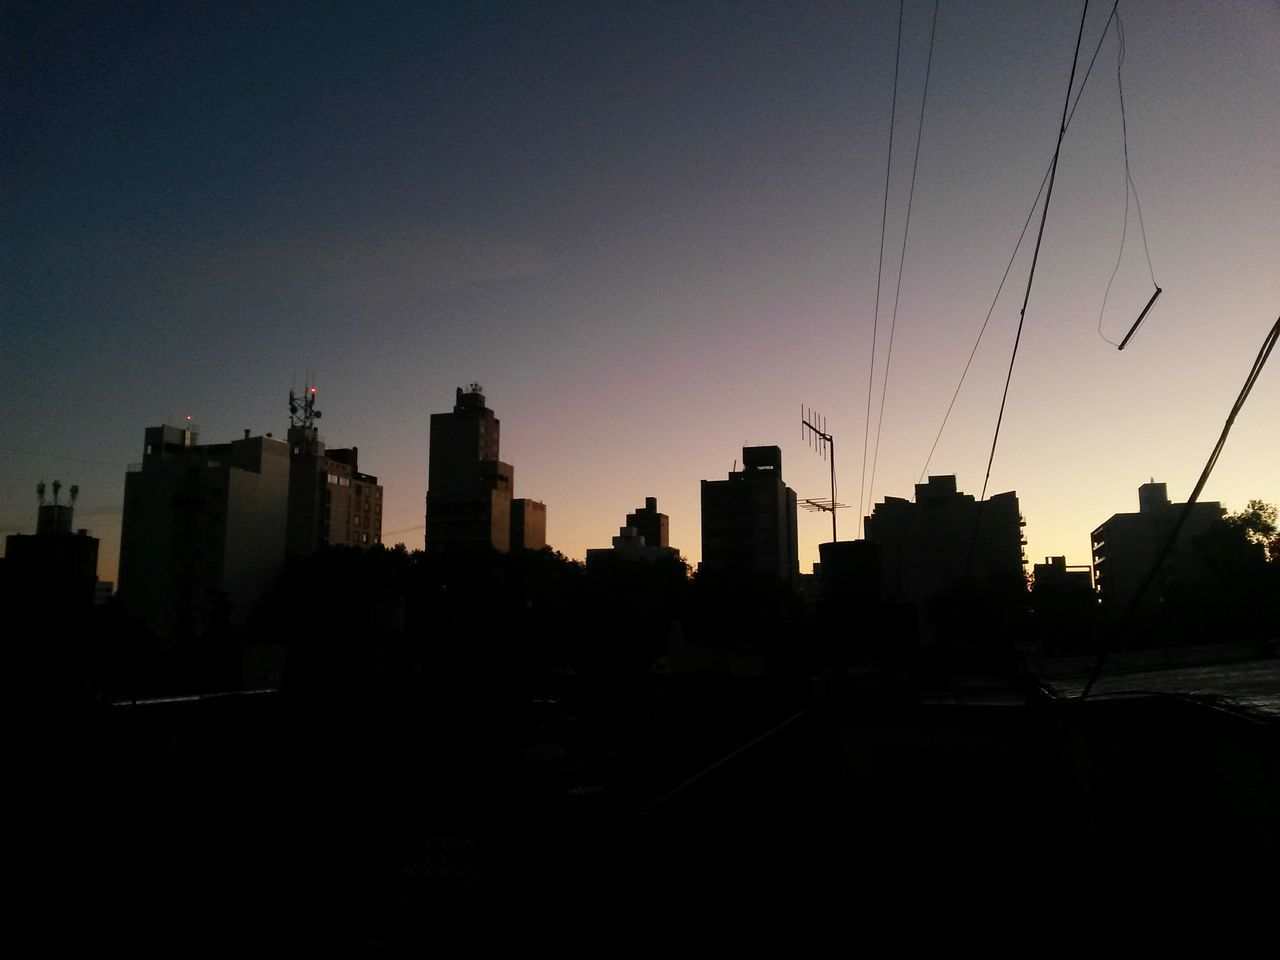 Good morning autumn Urban Skyline Silhouette City Outdoors No People Sky Cityscape Sunrise Sunrise Silhouette Sunrise City Buildings Autumn Sky